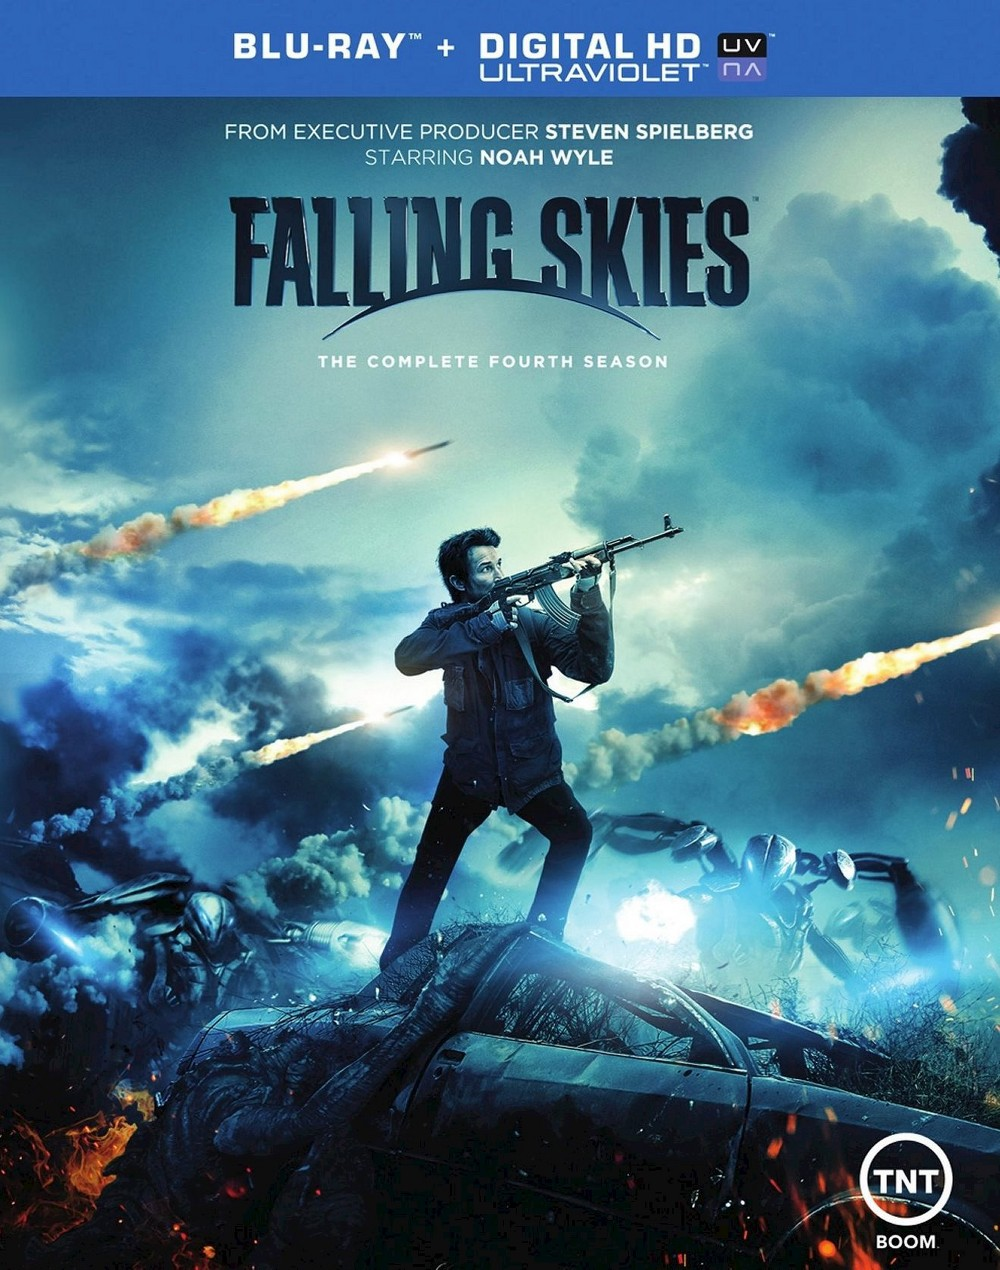 Warner Brothers Falling Skies: The Complete Fourth Season [2 Discs] [Blu-ray]